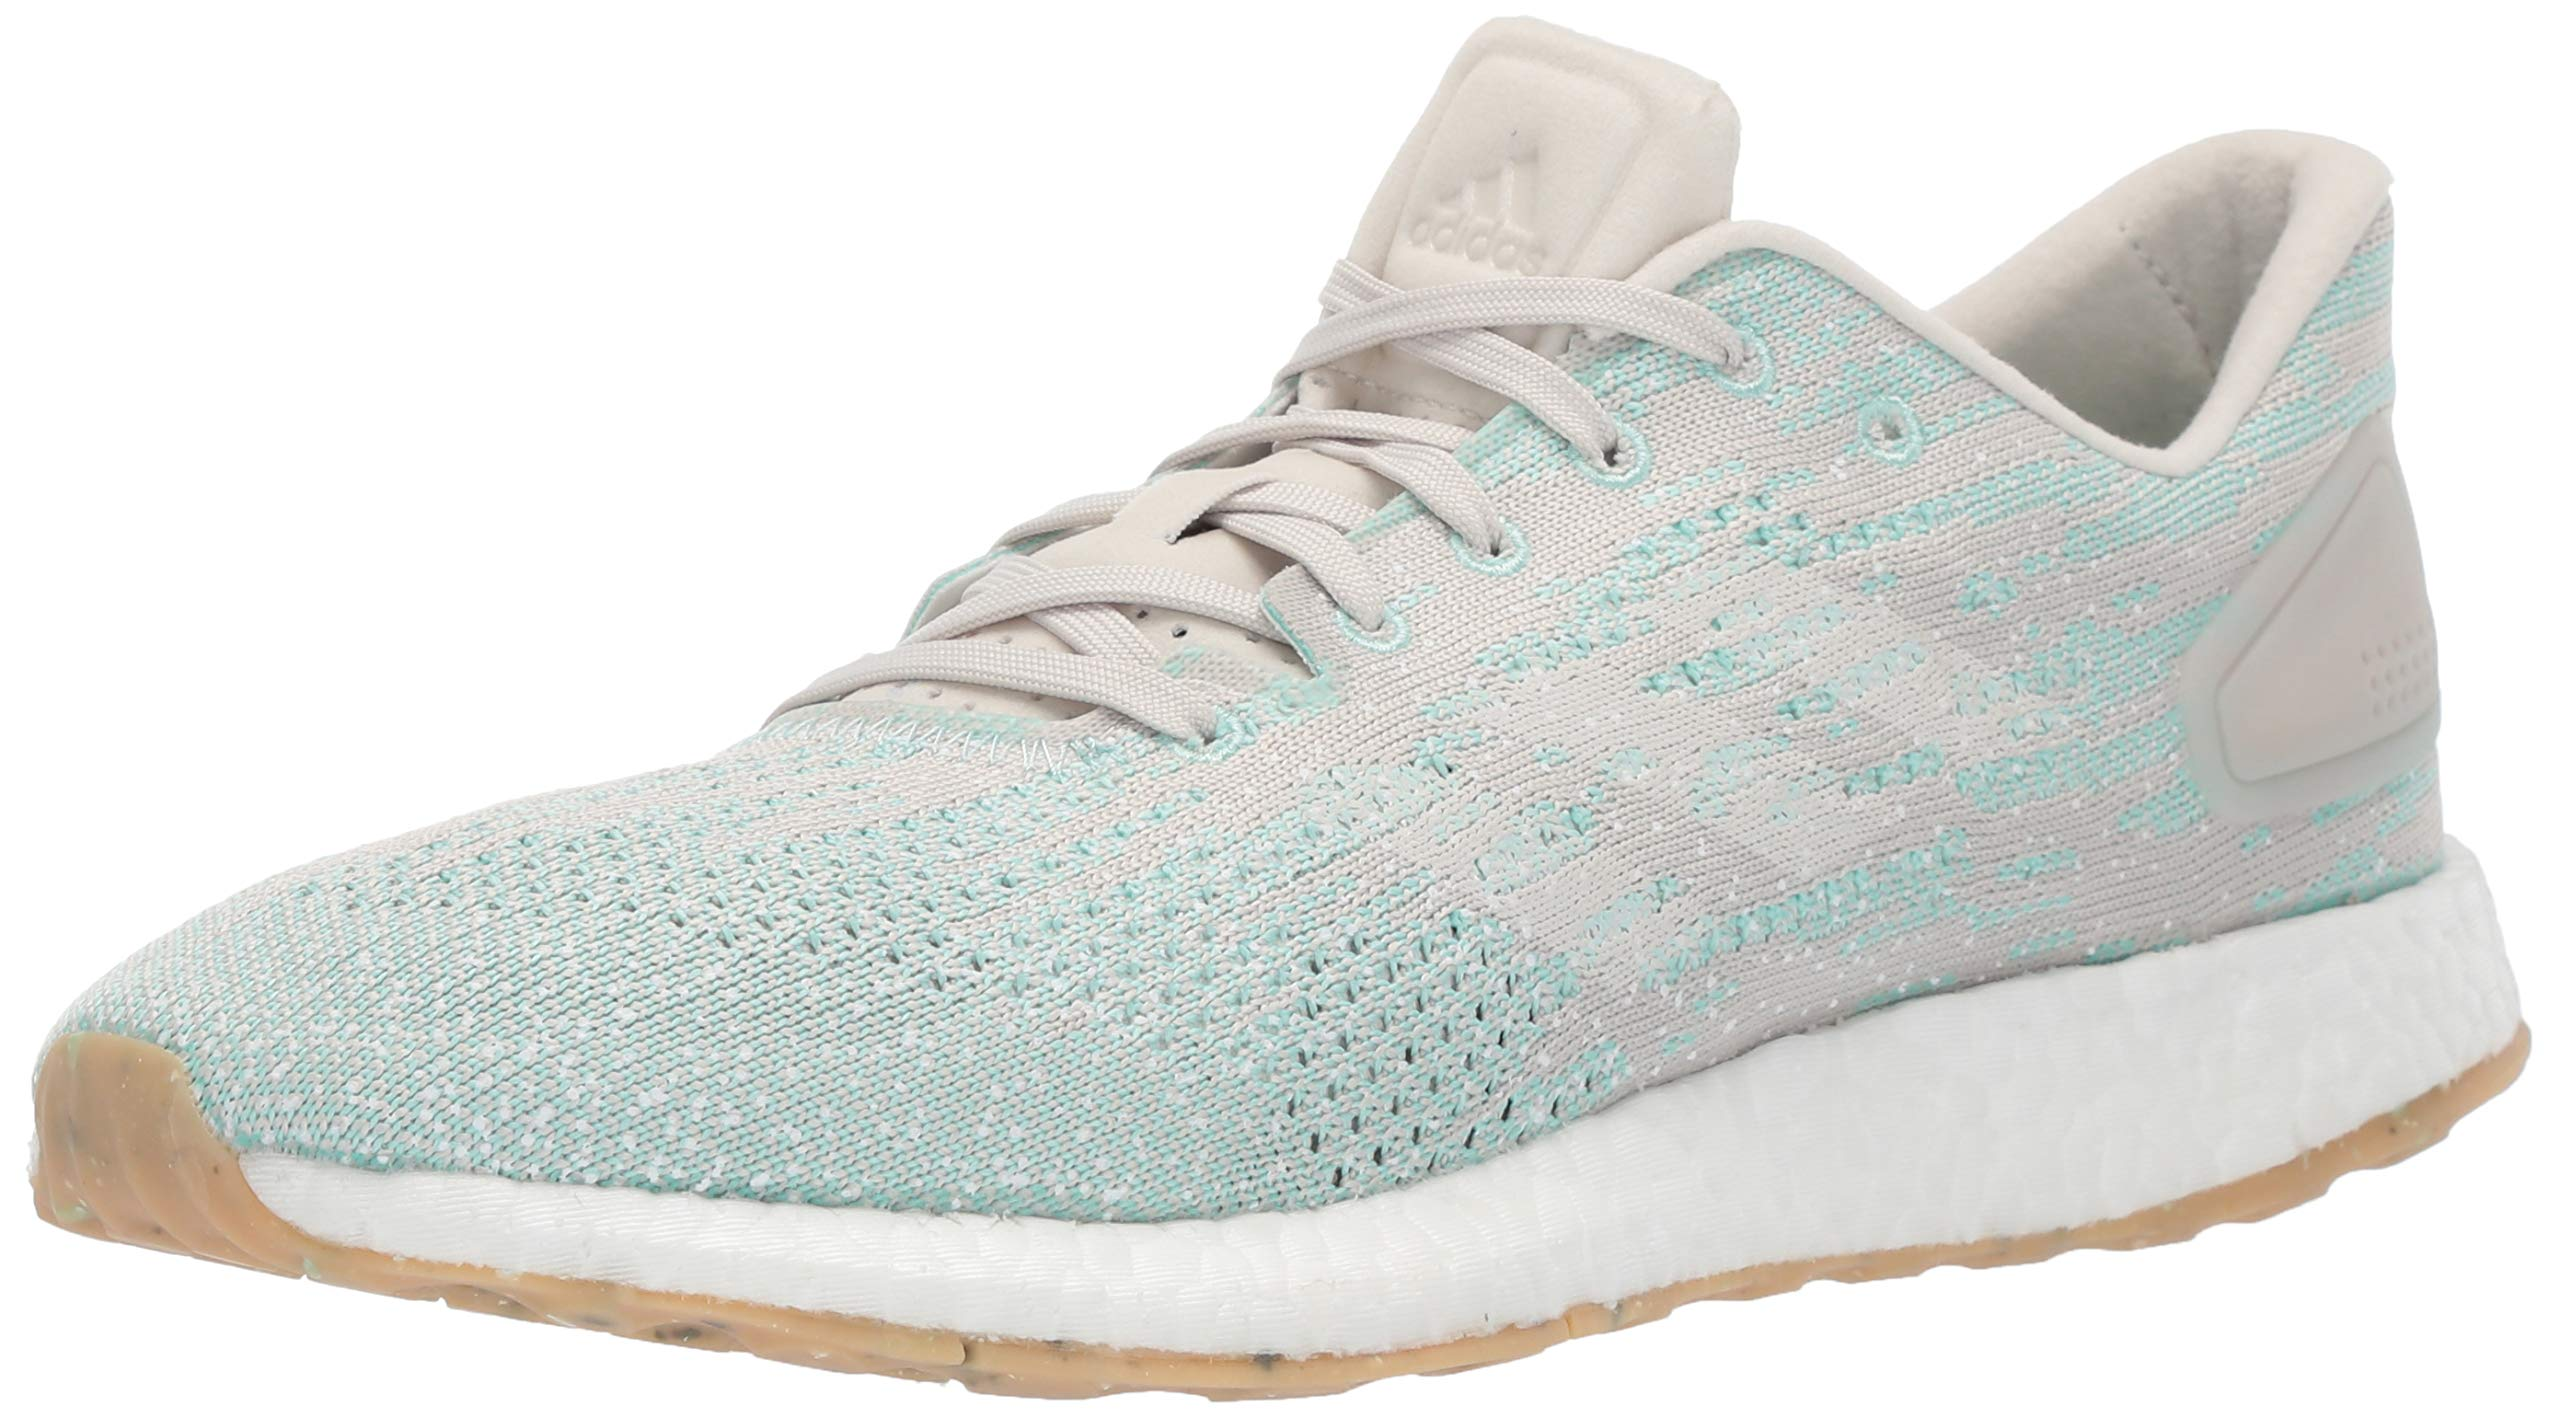 adidas Women's Pureboost DPR Running Shoes, raw White/Clear Mint, 11 M US by adidas